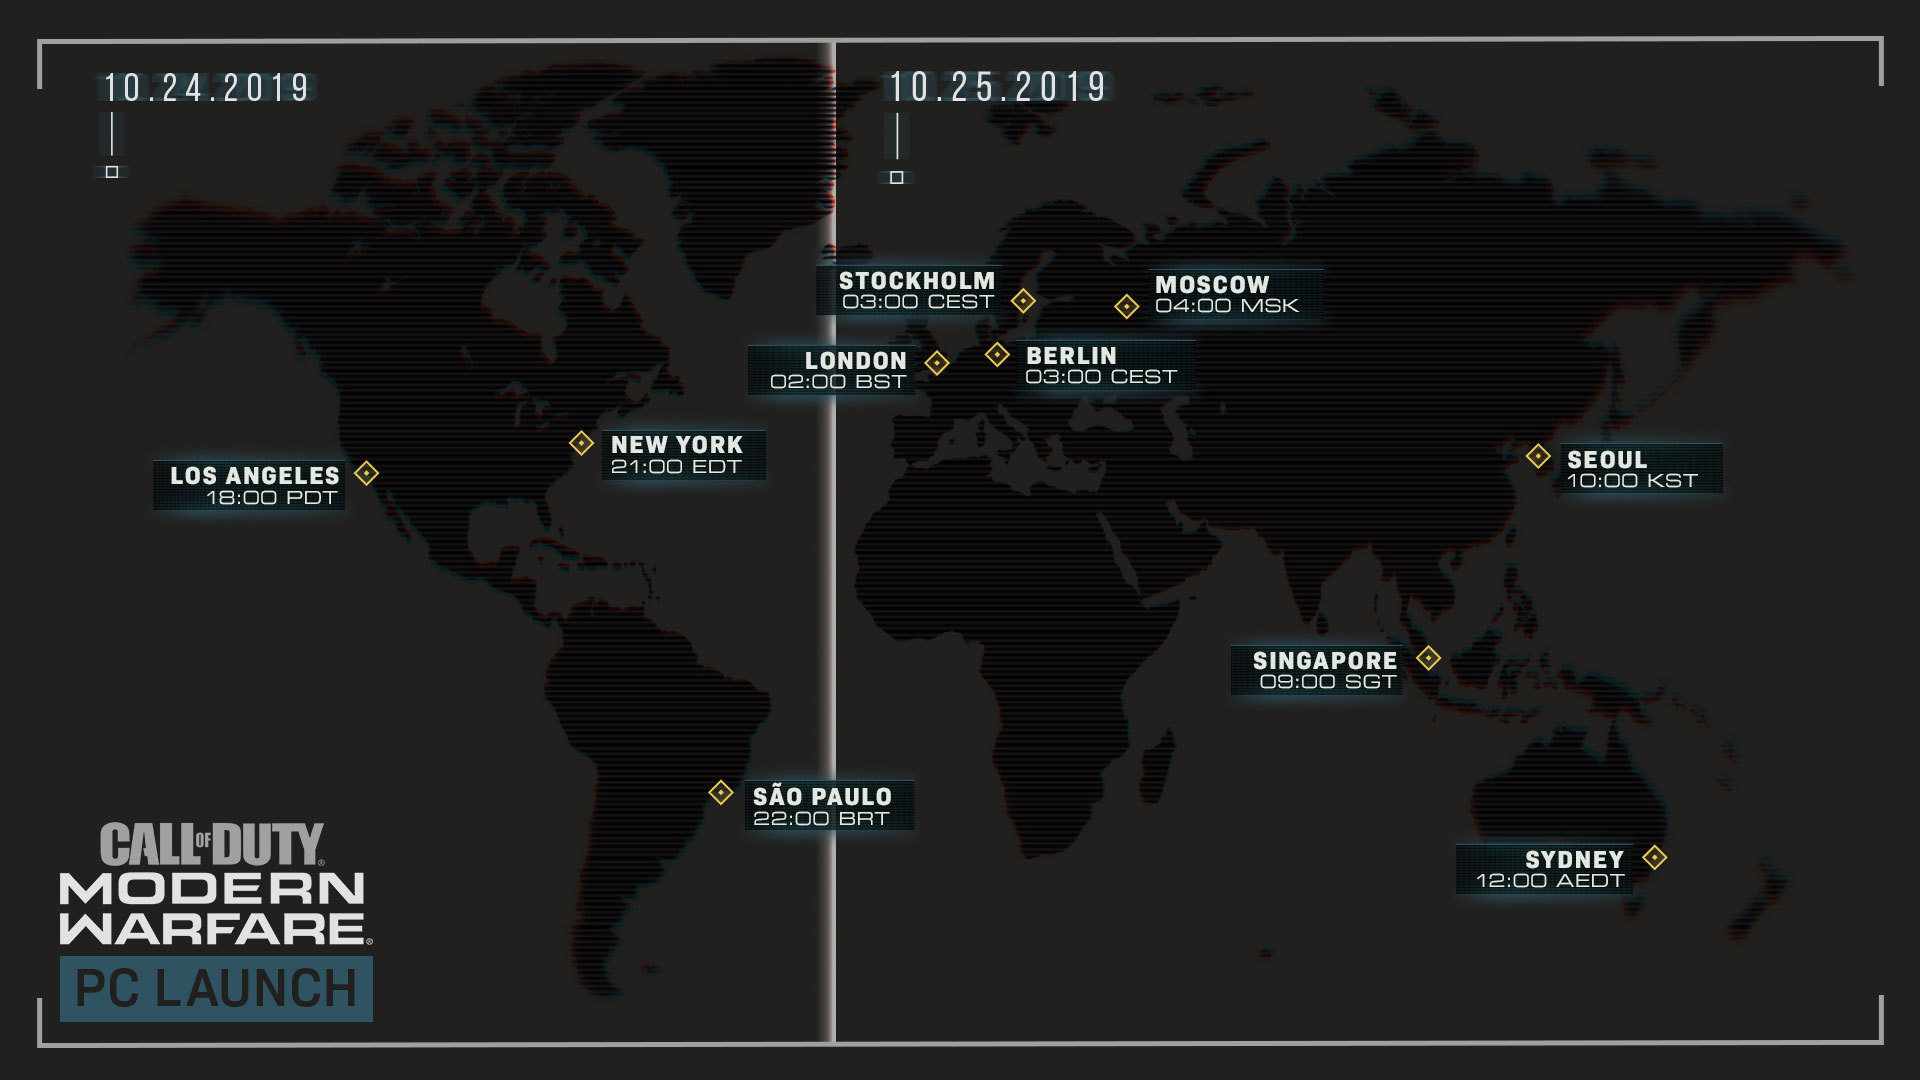 Call of Duty: Release Schedule by Time Zone